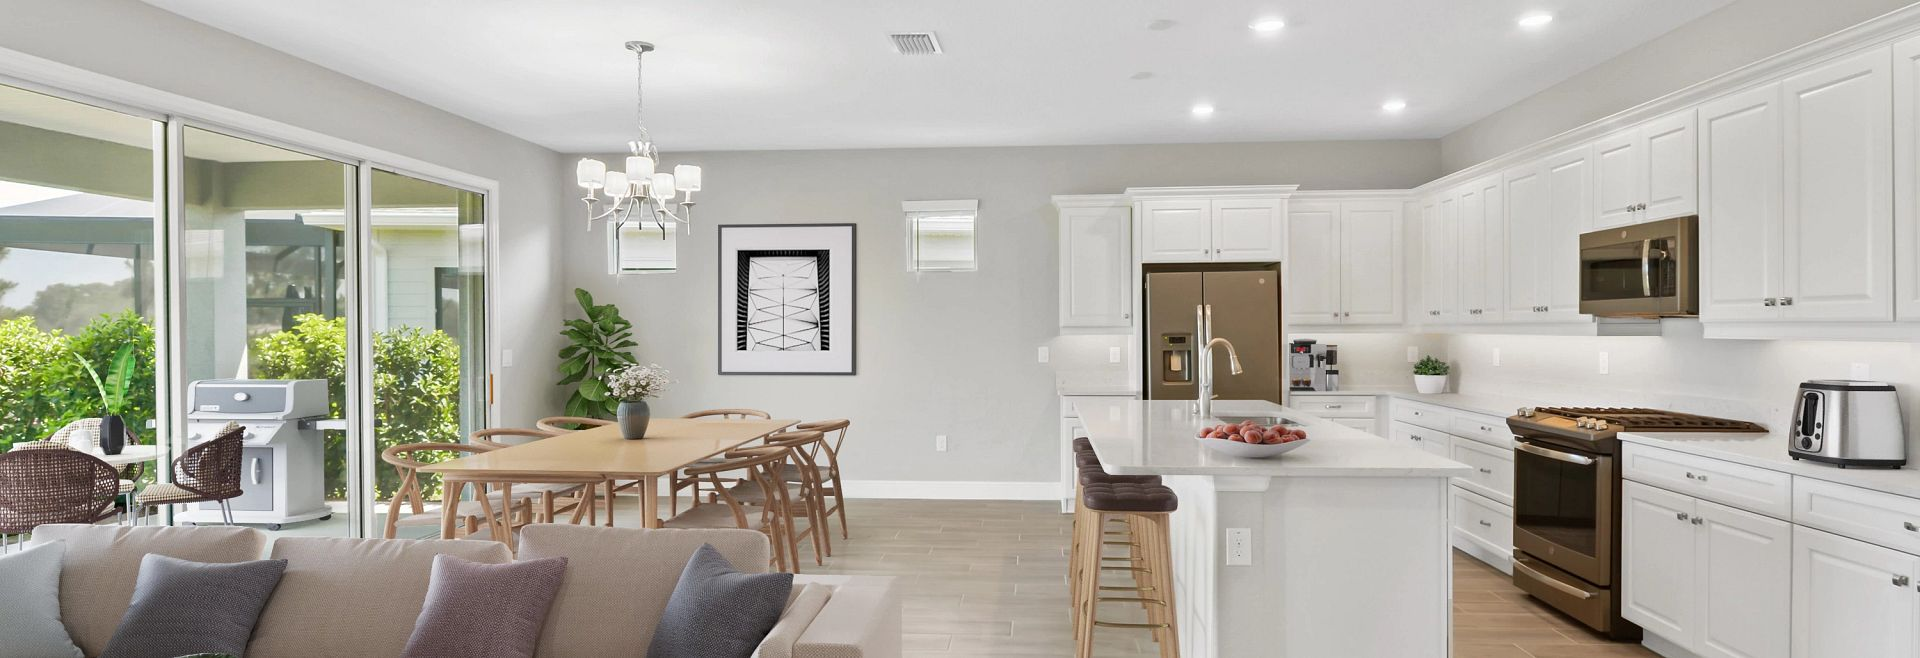 Trilogy at Ocala Preserve Liberty Quick Move In Virtually Staged Great Room